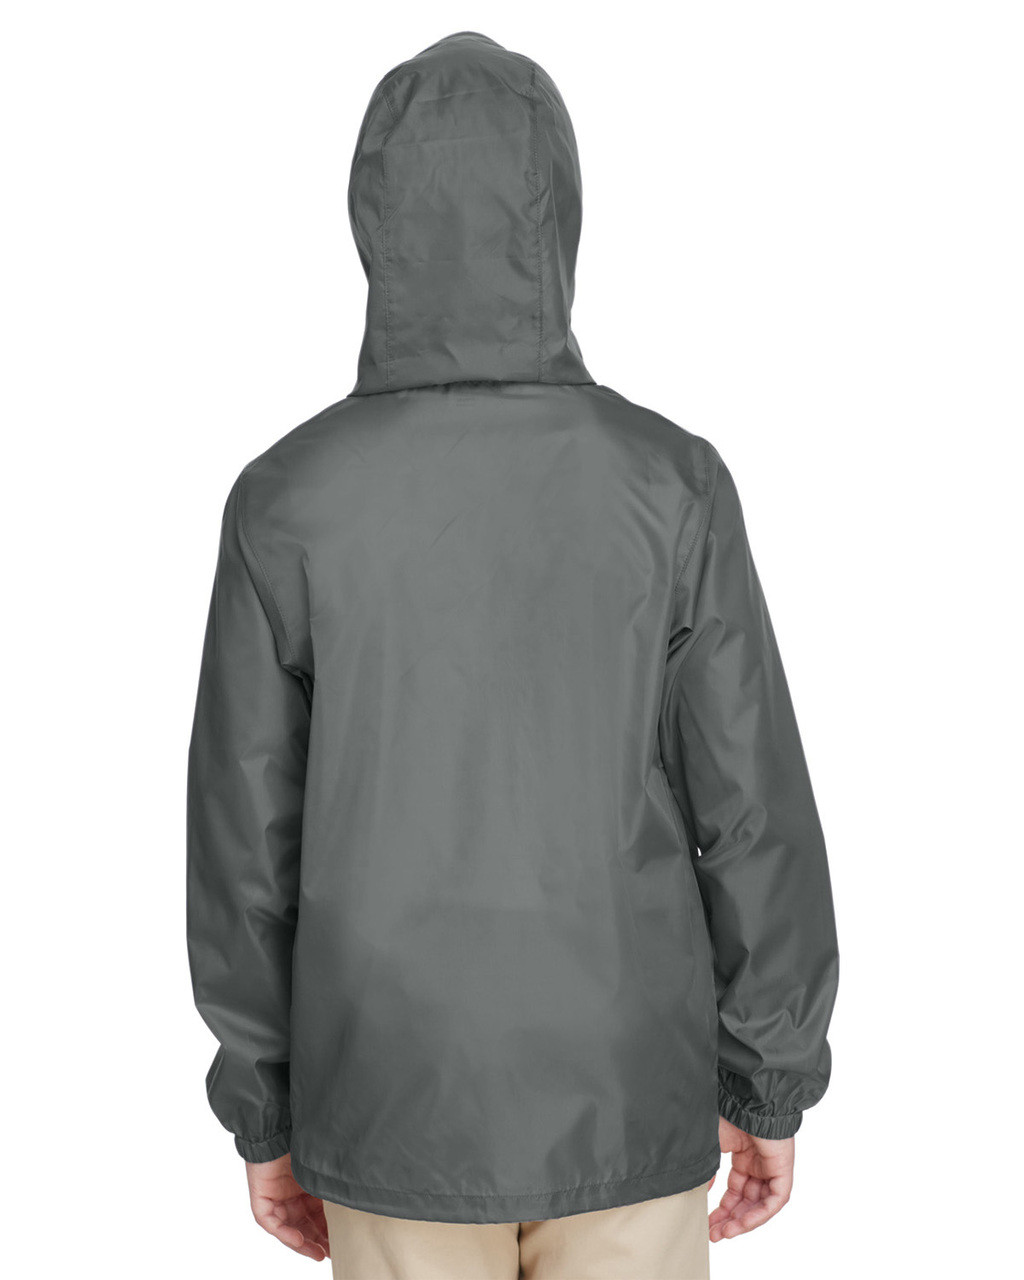 Sport Graphite, Back - TT73Y Team 365 Youth Zone Protect Lightweight Jacket  | BlankClothing.ca